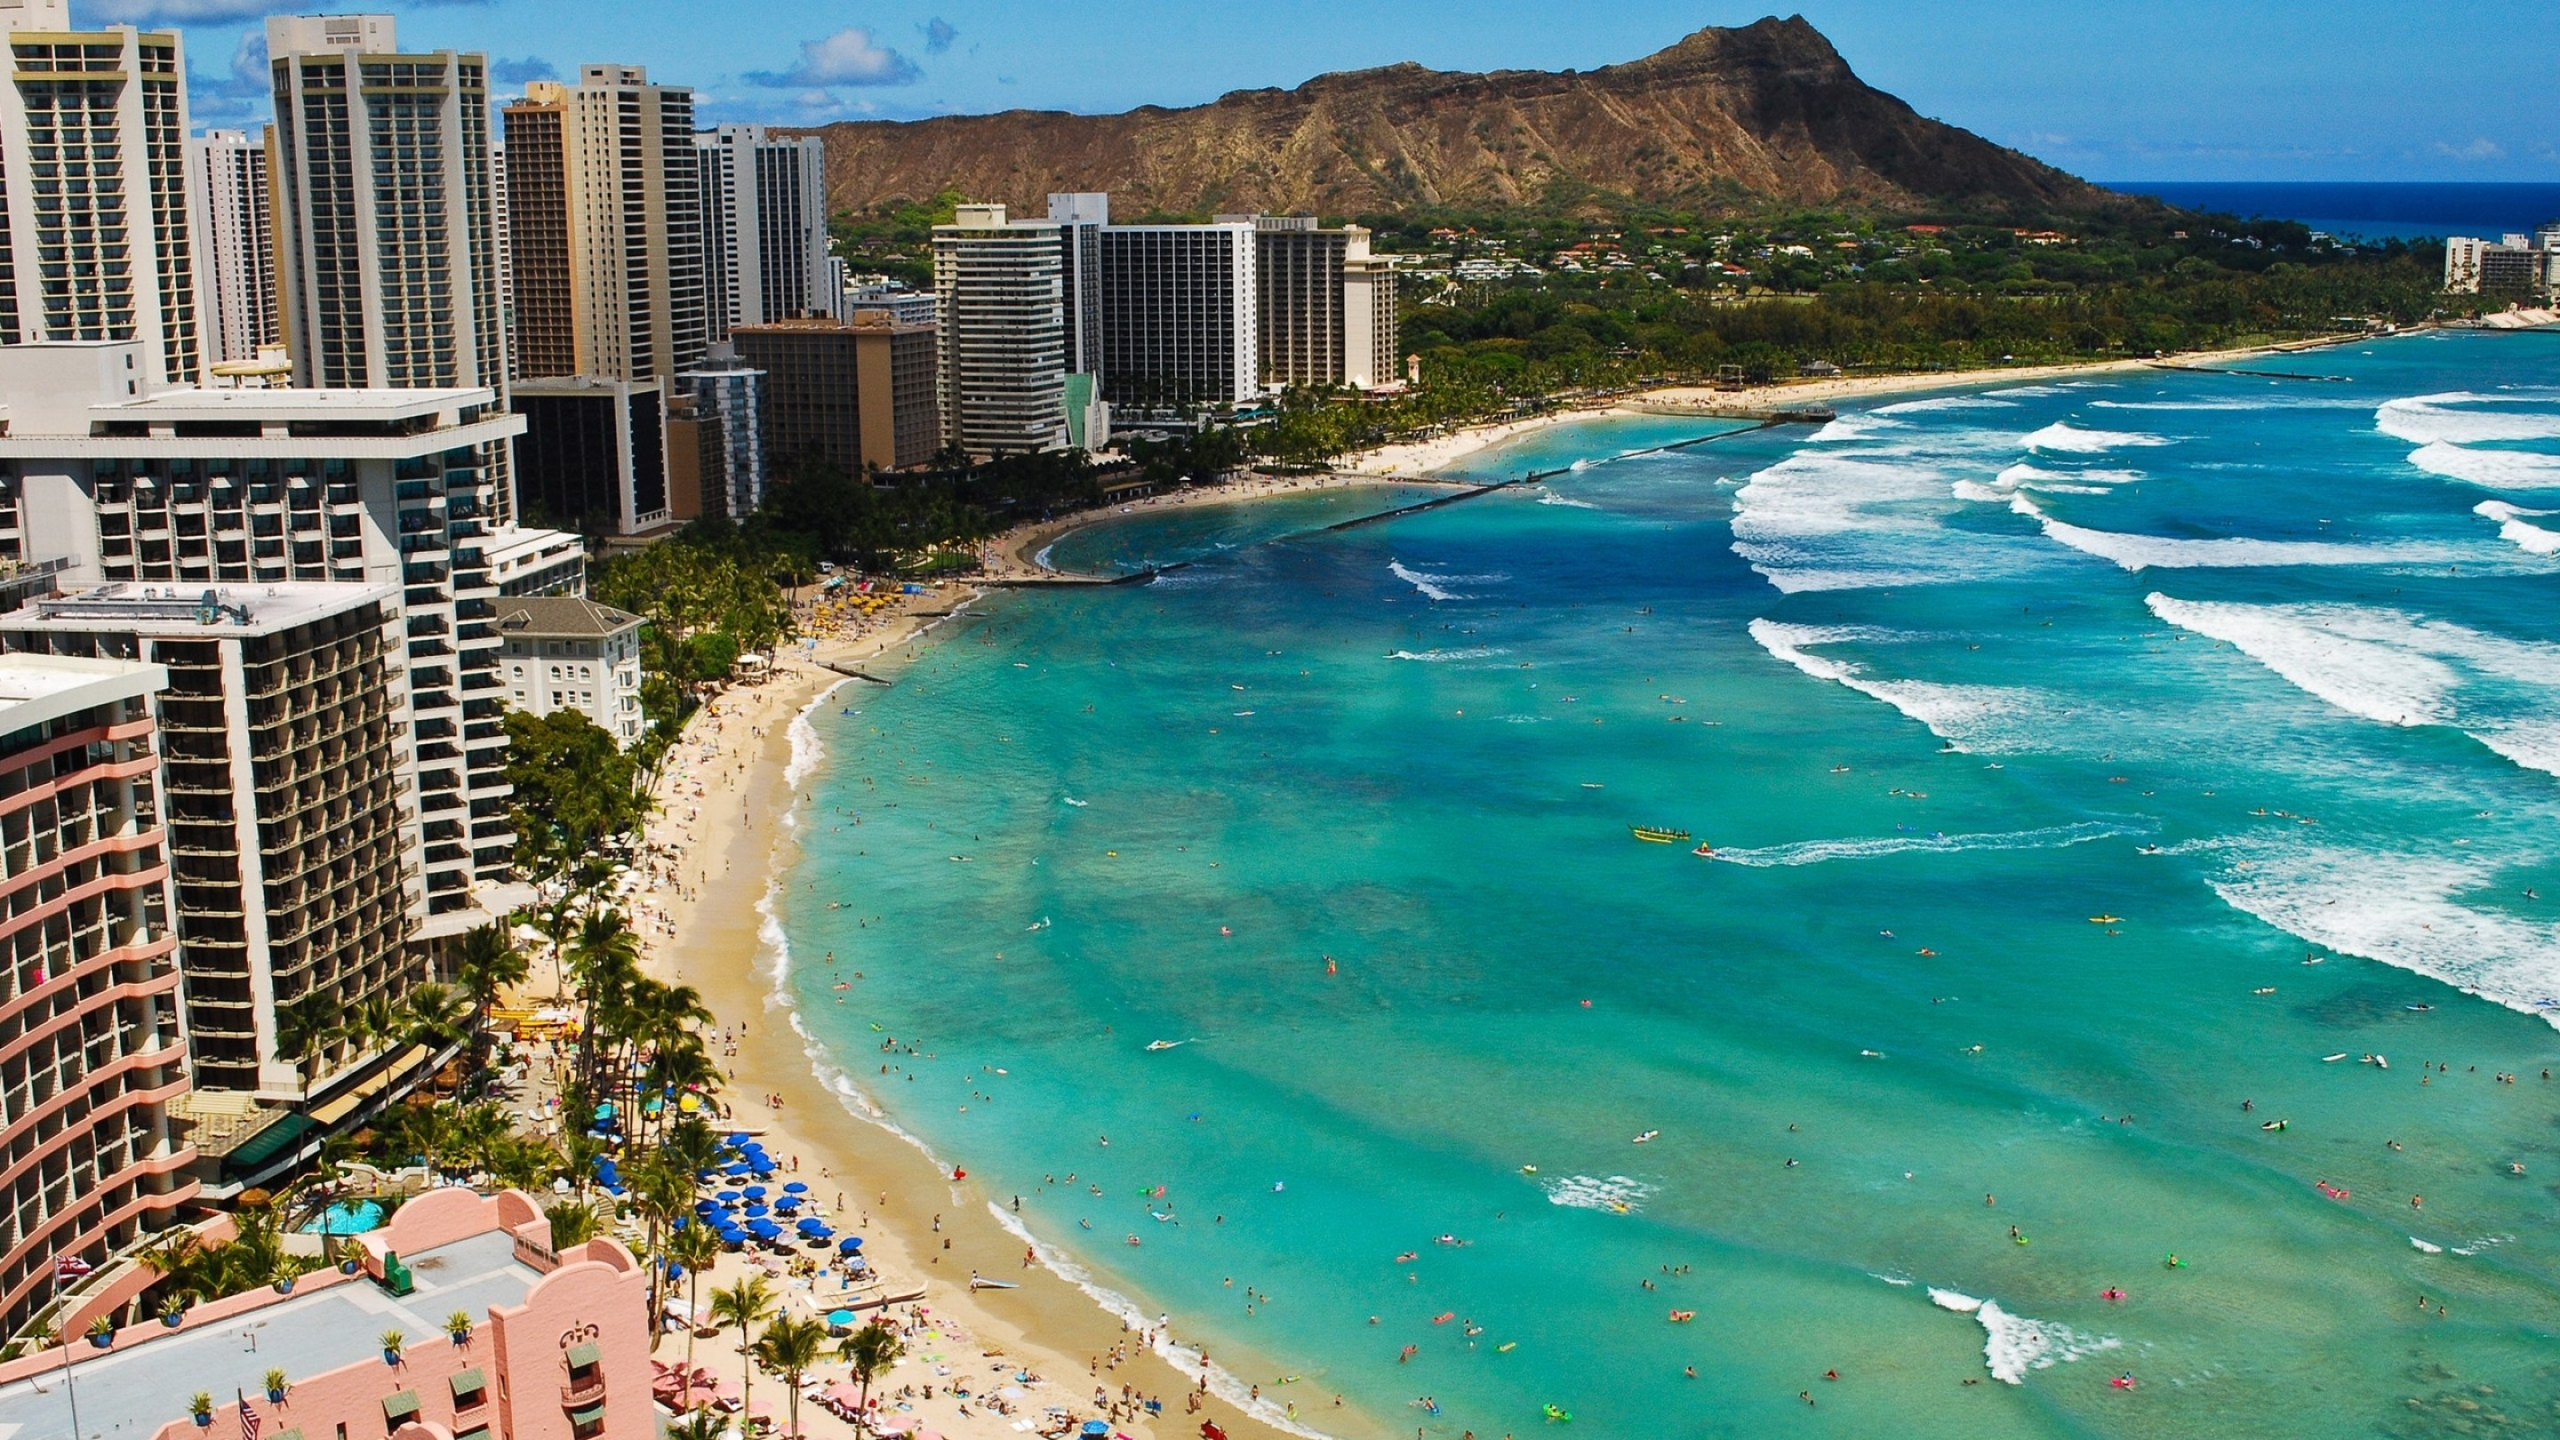 Waikiki Beach Mac Wallpaper Download Mac Wallpapers Download 2560x1440